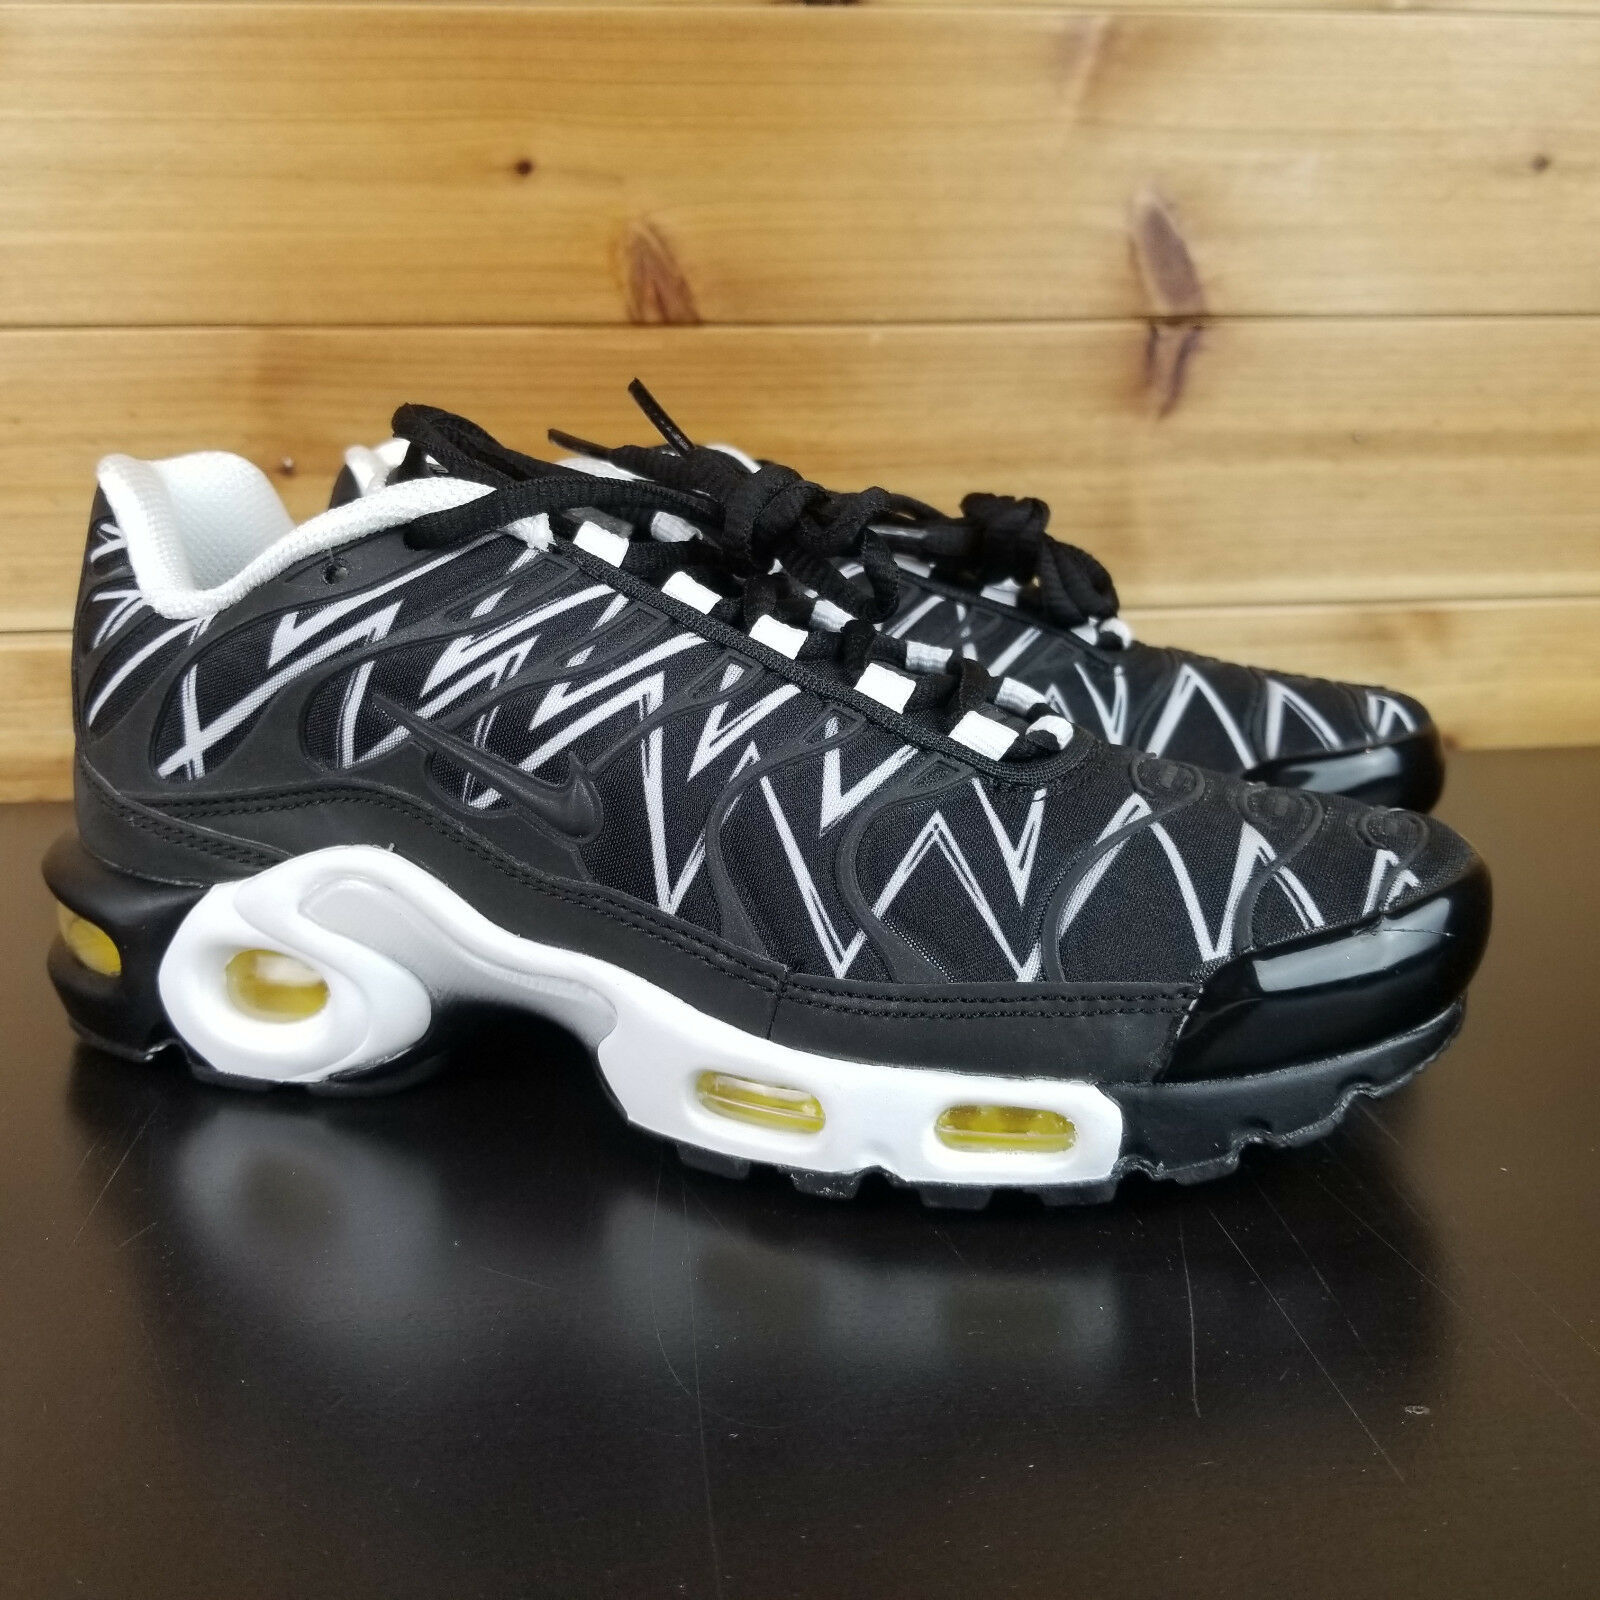 release date: 6a0f0 d4d0a brand new nike air max essentiels modernes rouge noir ou ou ou blanc,  taille 11,5 occasionnel gym 2ed293